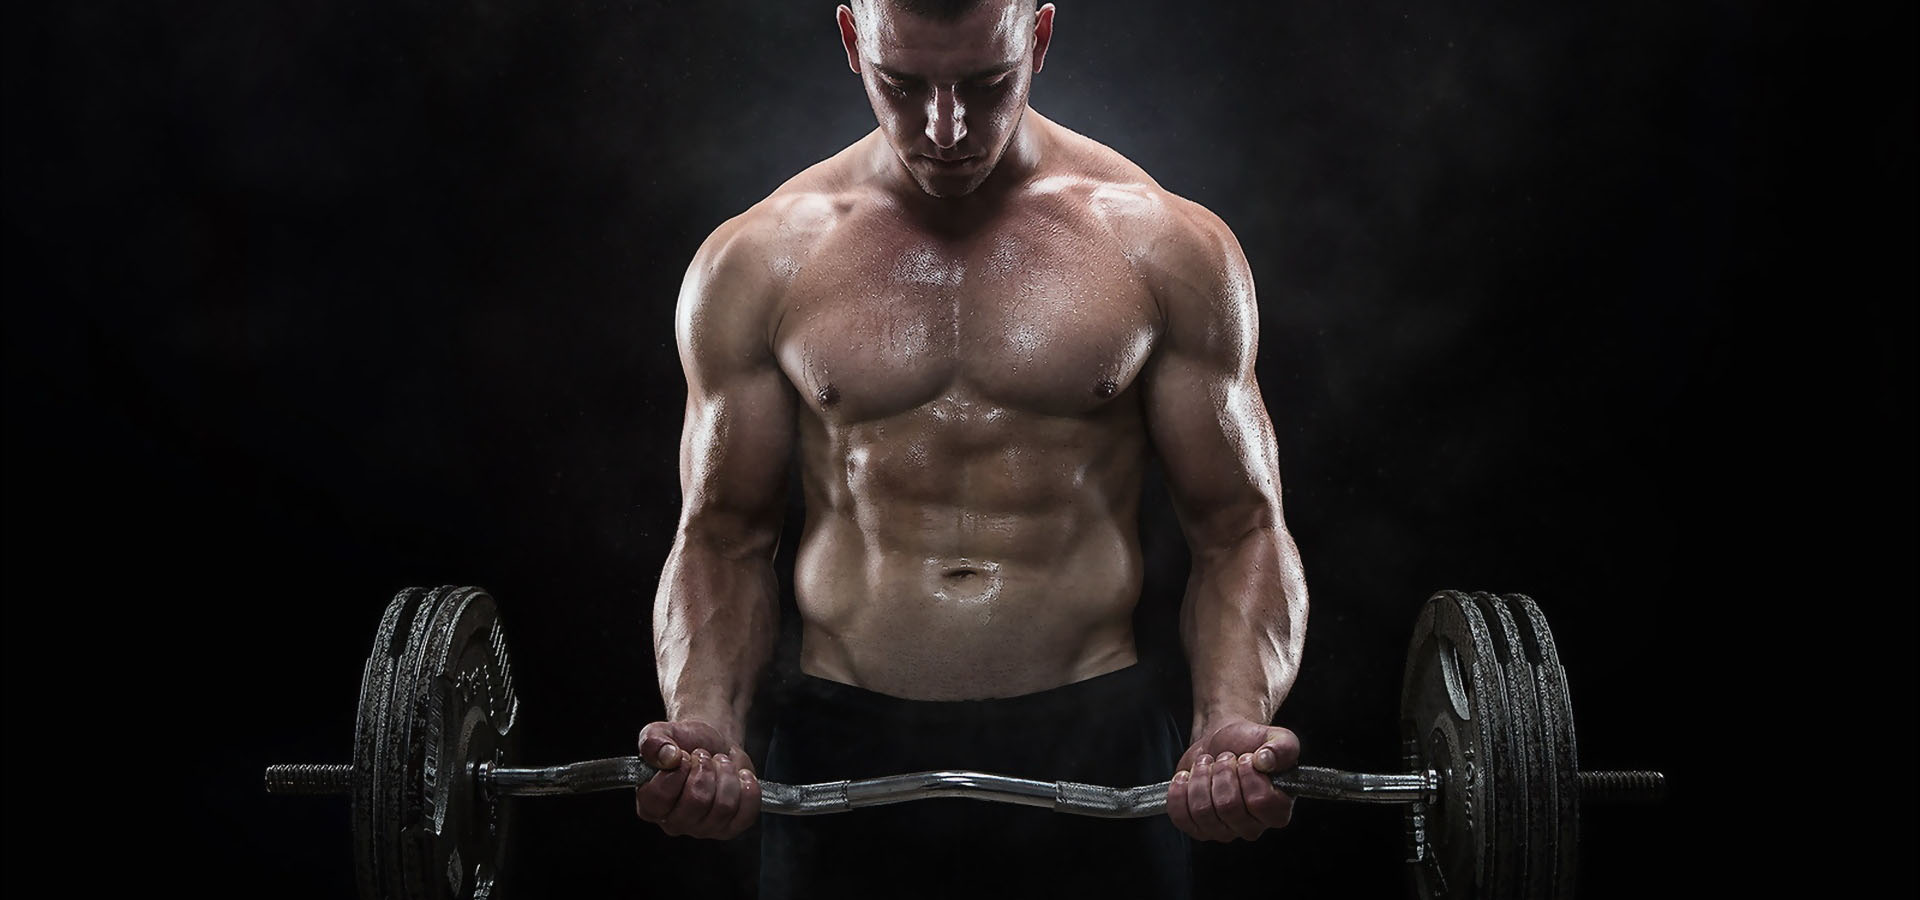 Man training in a gym with a barbell.